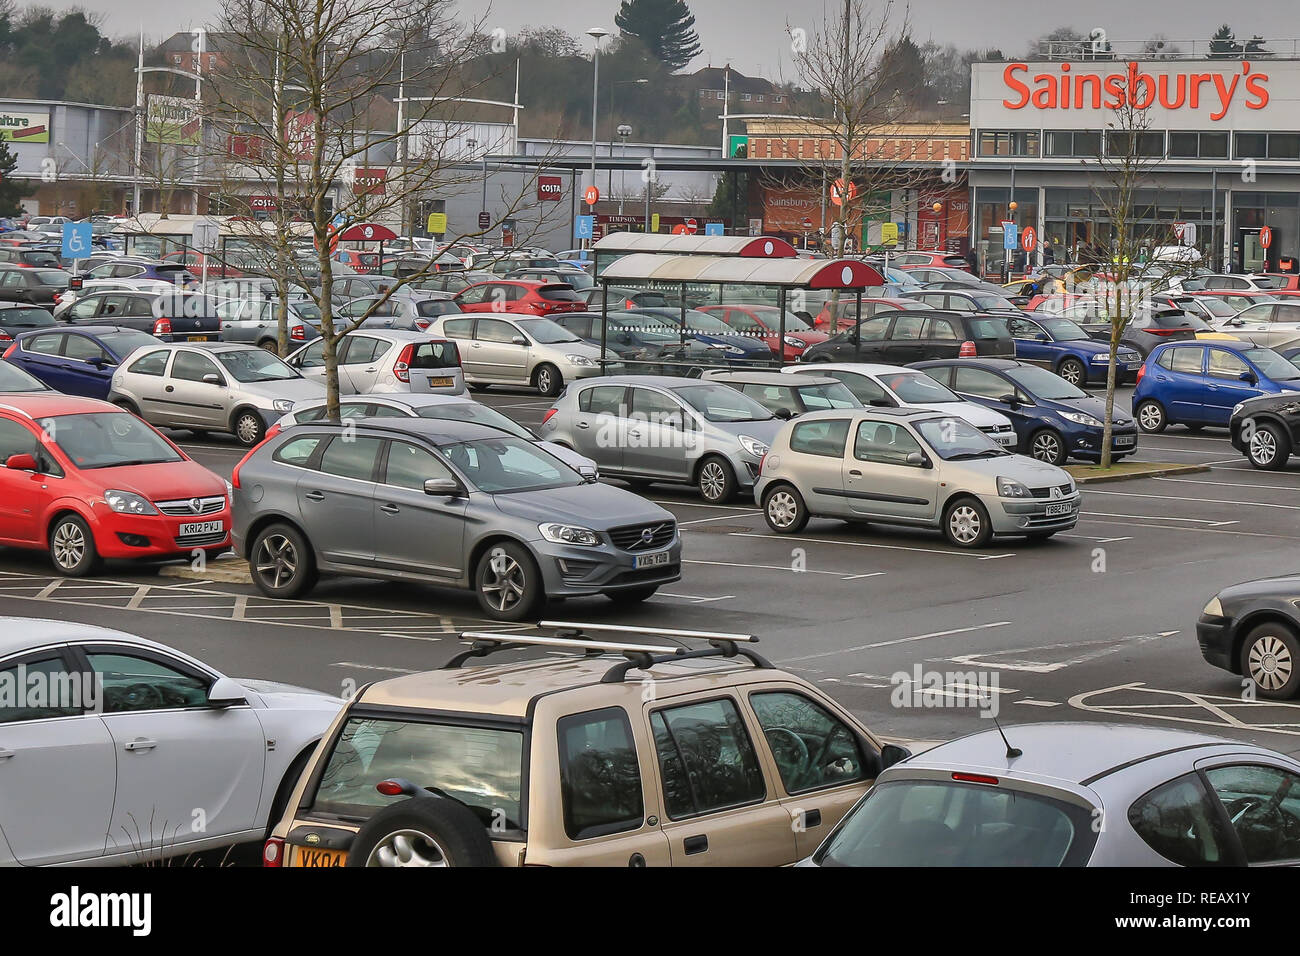 Kidderminster, UK, 21st January, 2019. it may be the third Monday in January, now known as Blue Monday, when spirits are low, credit card bills high, weather gloomy and all those new year resolutions failing fast, yet still the retail car parks are full of shoppers with seemingly endless amounts of money to spend. Credit: Lee Hudson/Alamy Live News Stock Photo